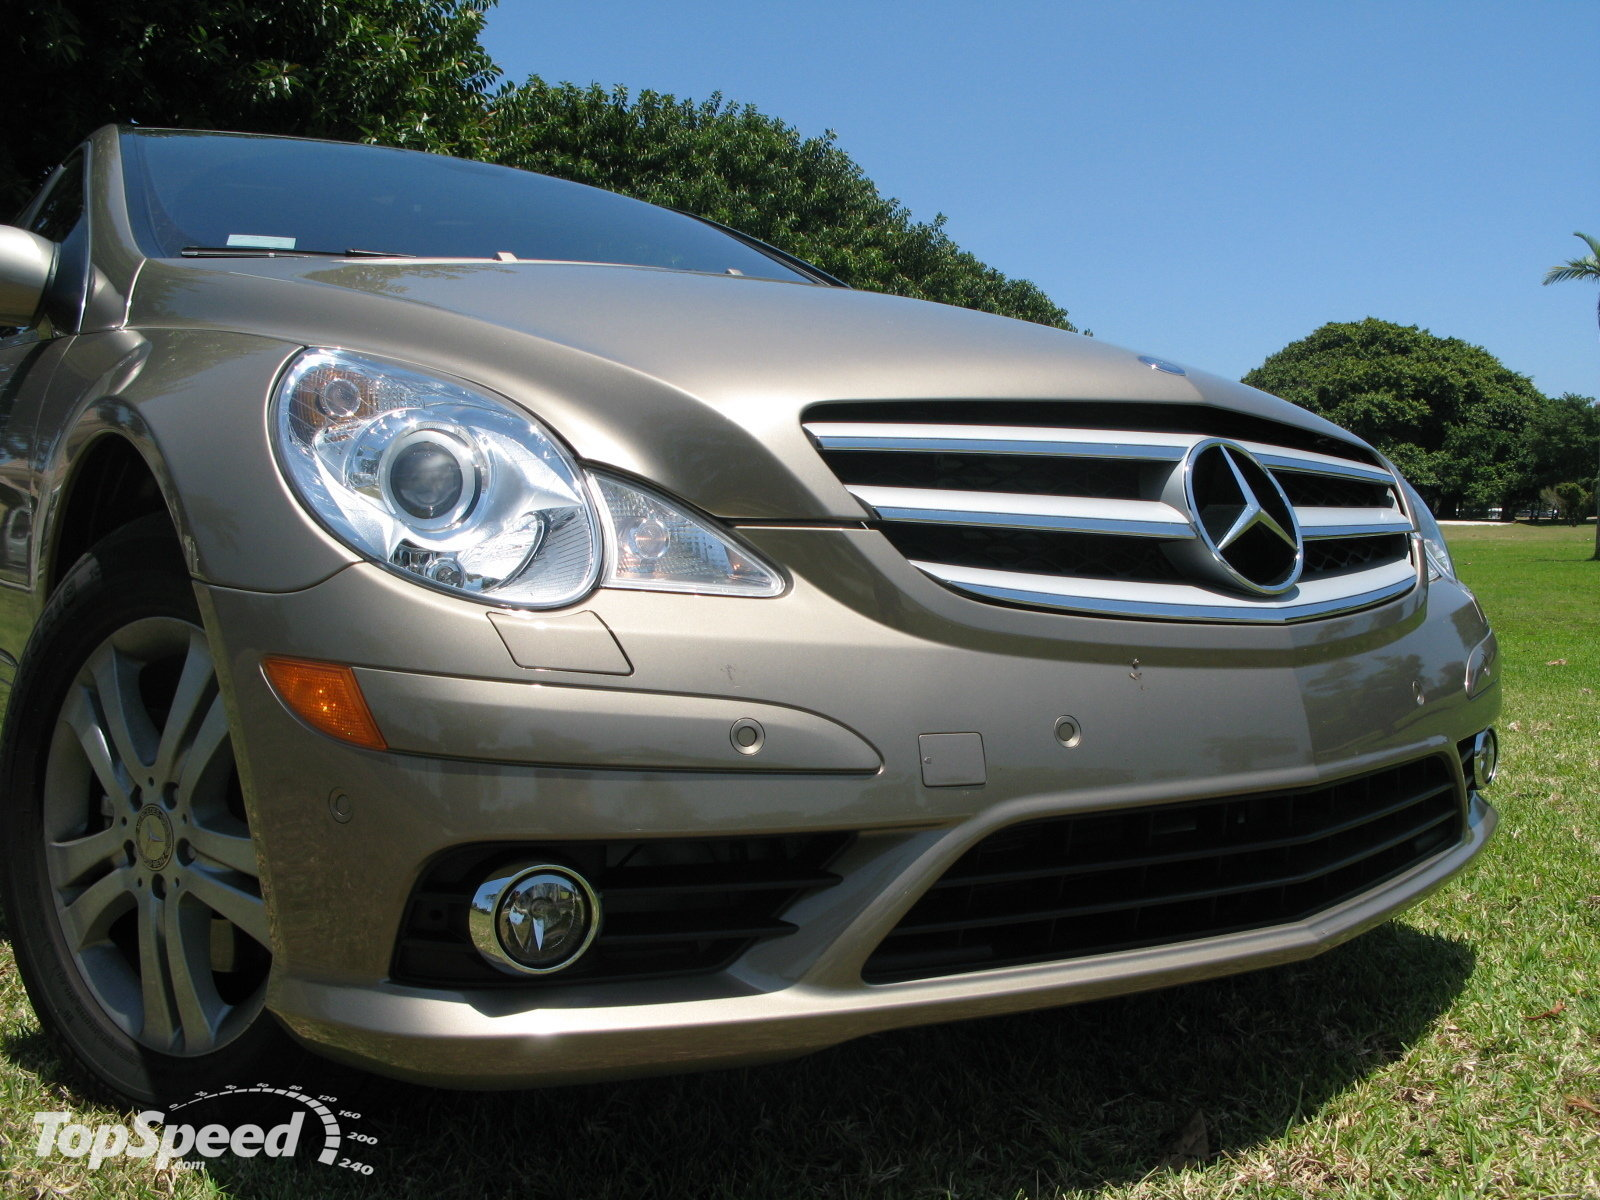 2008 mercedes r320 cdi 4 matic picture 248571 car review top speed. Black Bedroom Furniture Sets. Home Design Ideas